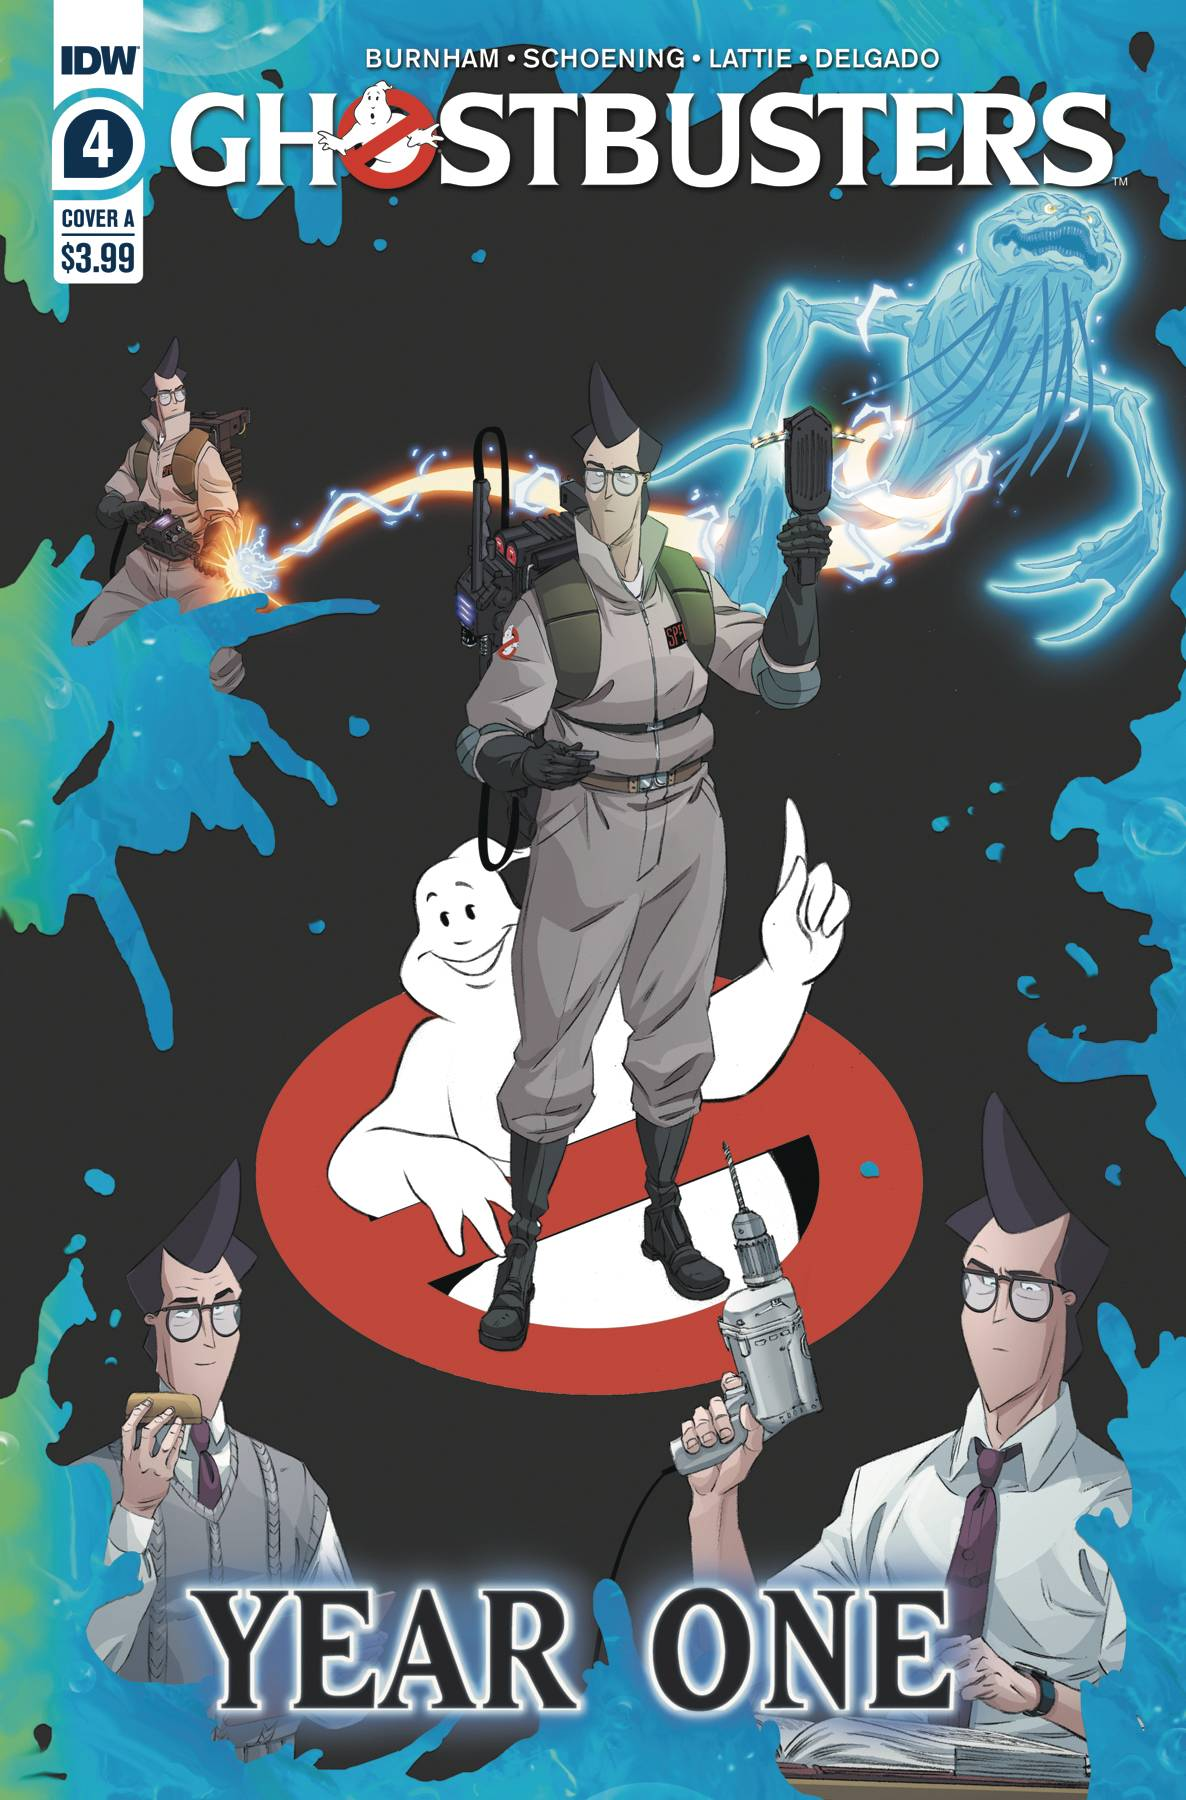 Ghostbusters: Year One #4 (2020)